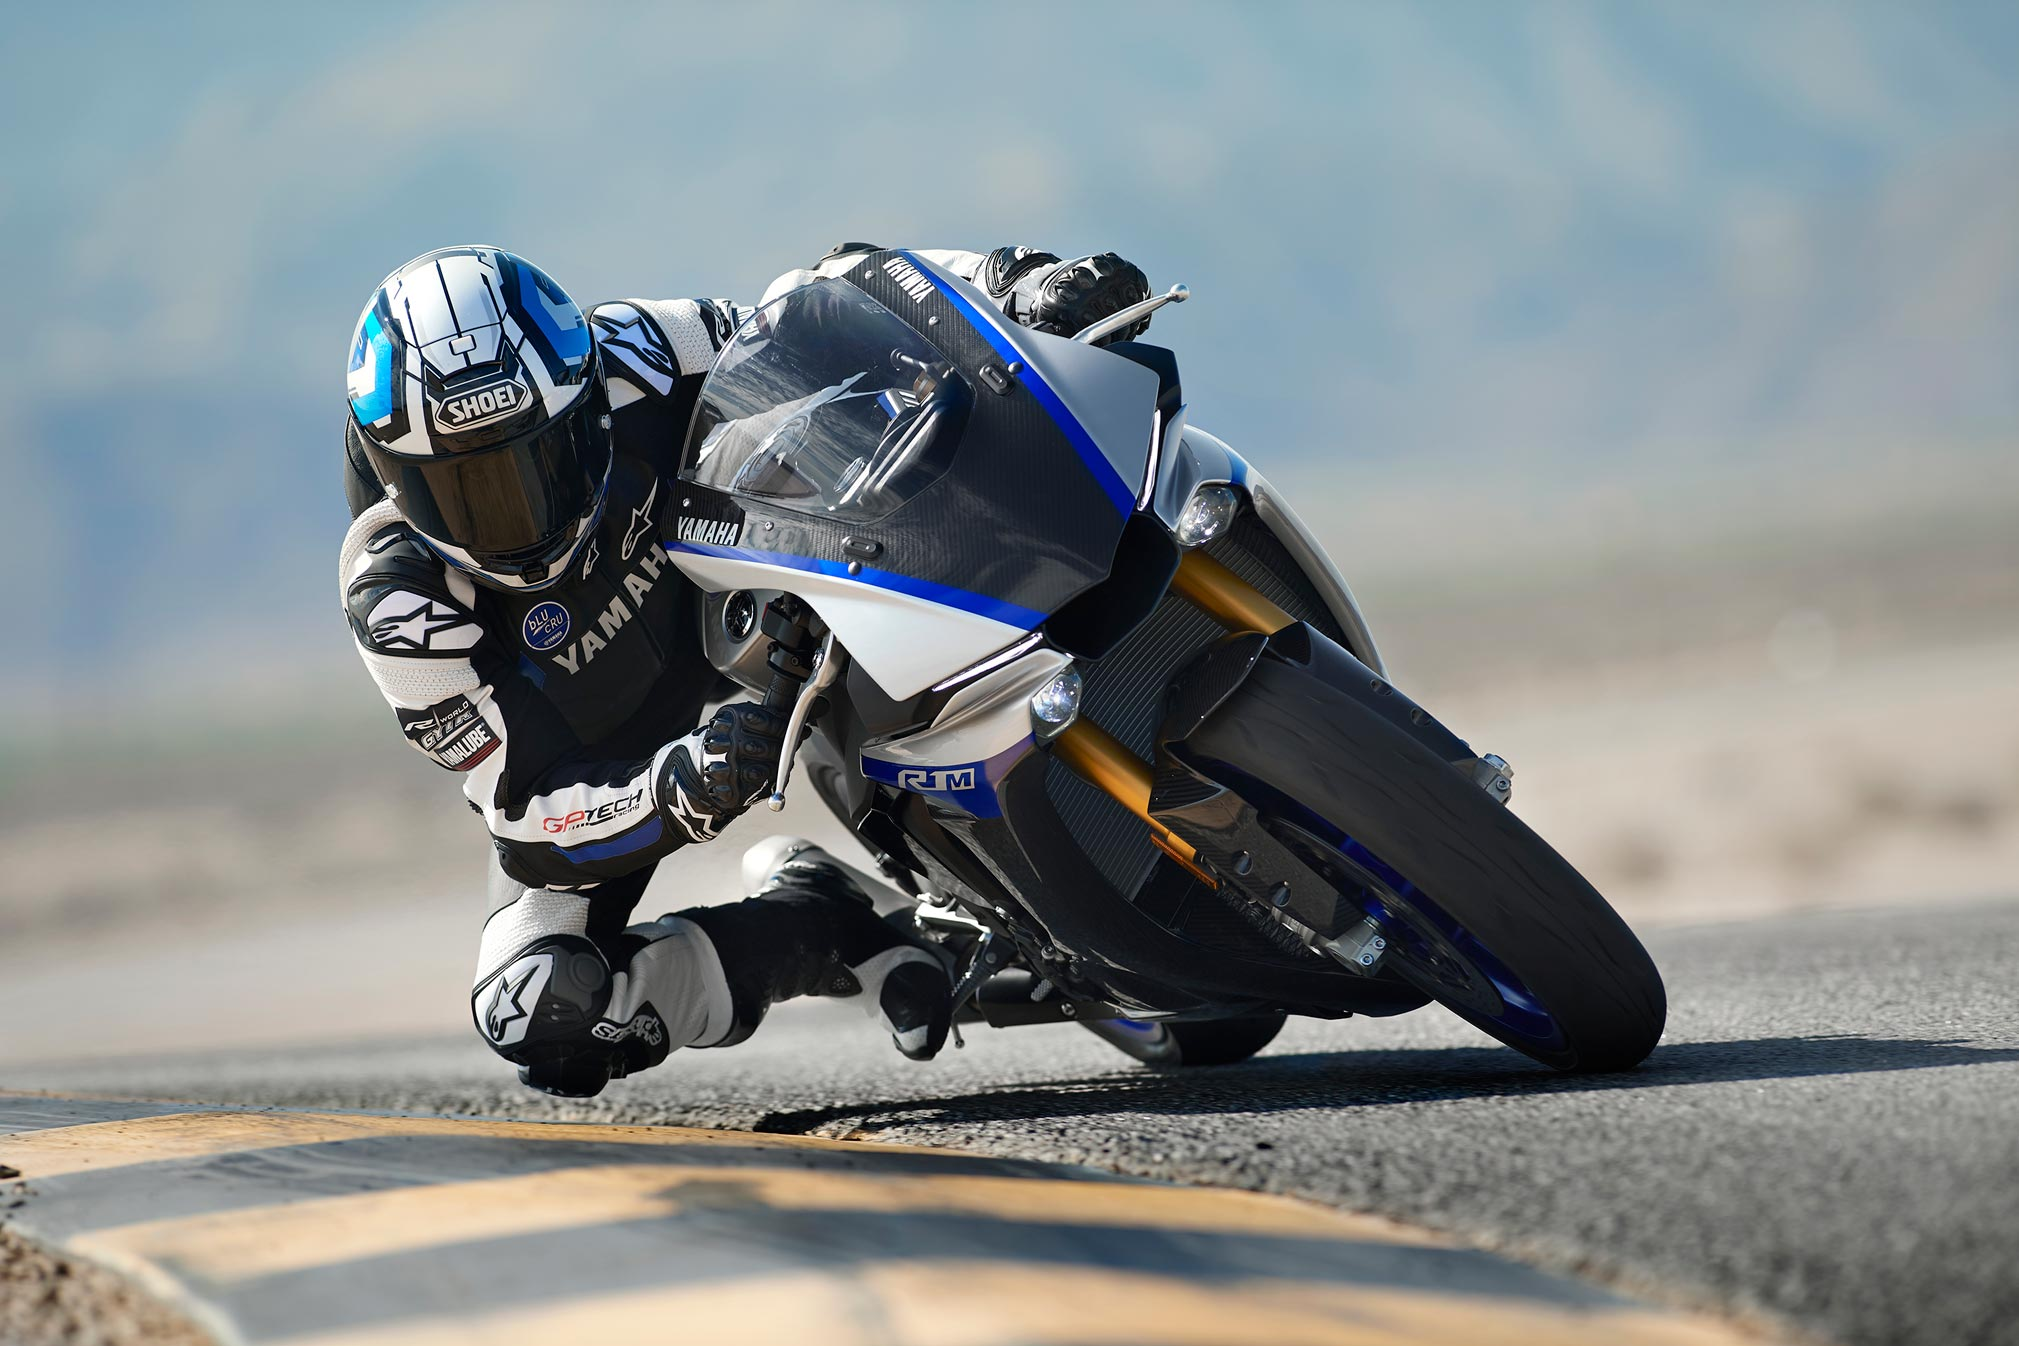 2019 Yamaha Yzf R1m Guide Total Motorcycle